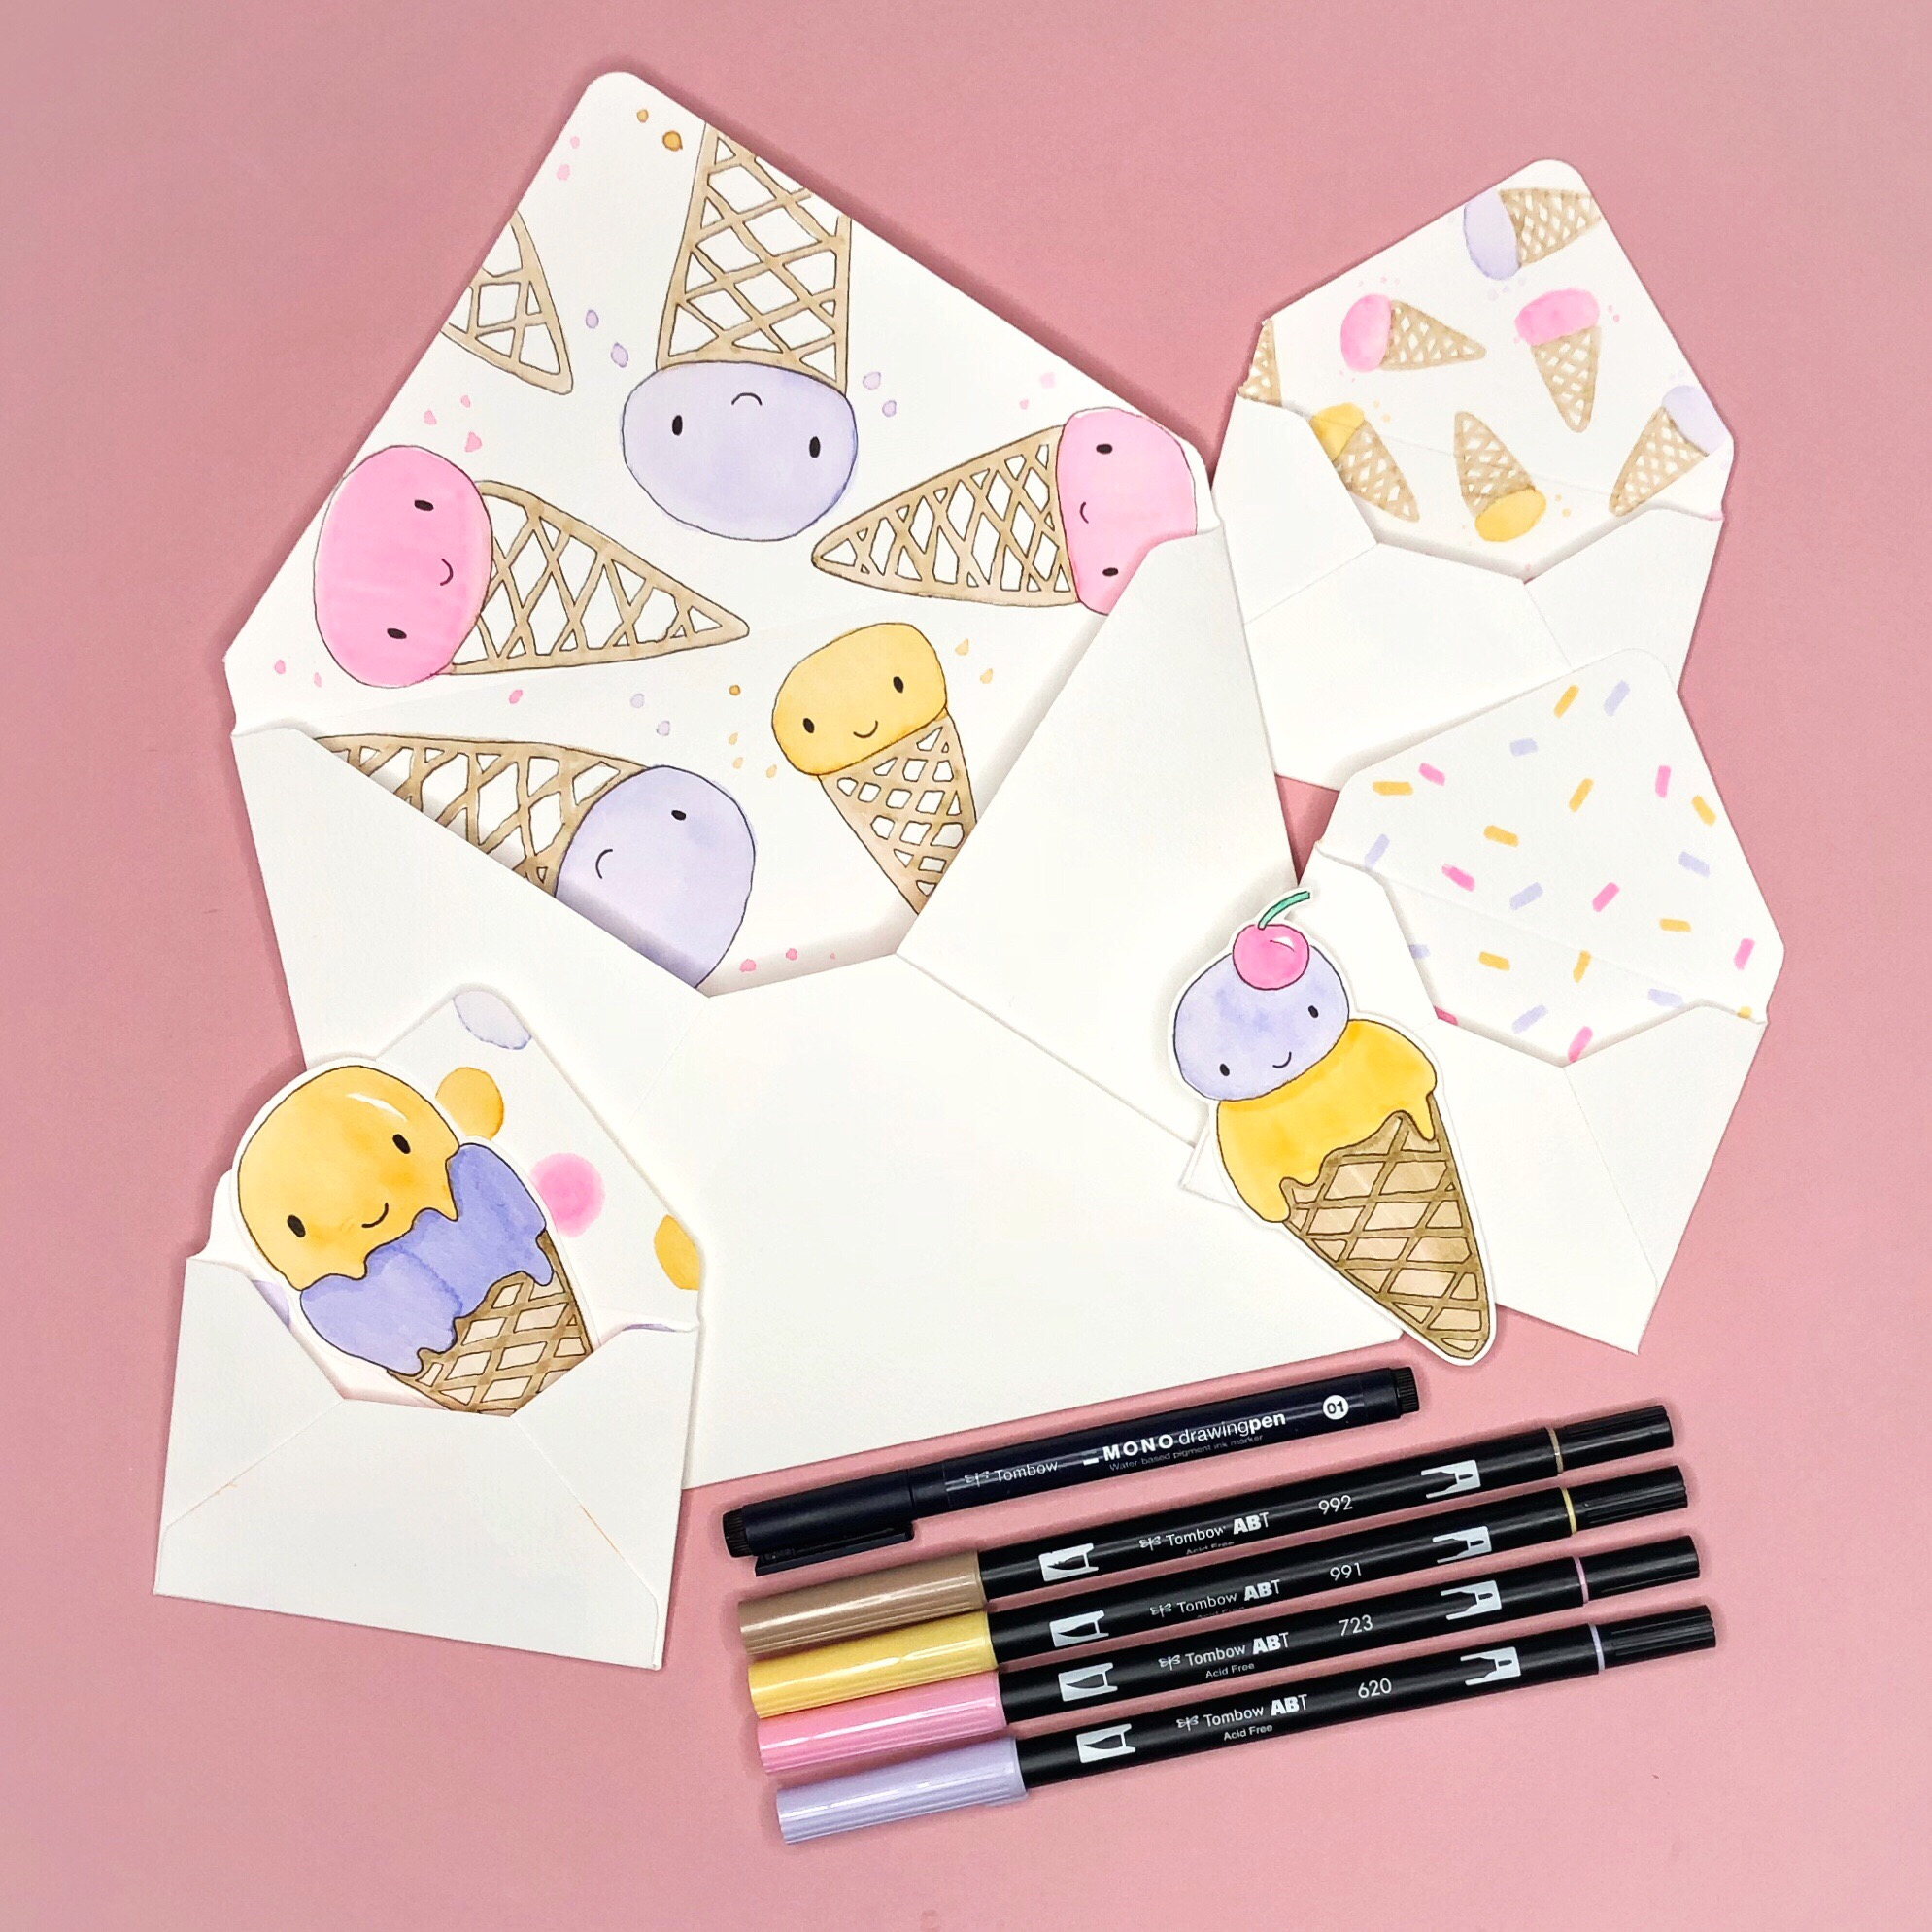 Summer Happy Mail: Make Your Own Envelopes by Jessica Mack of BrownPaperBunny